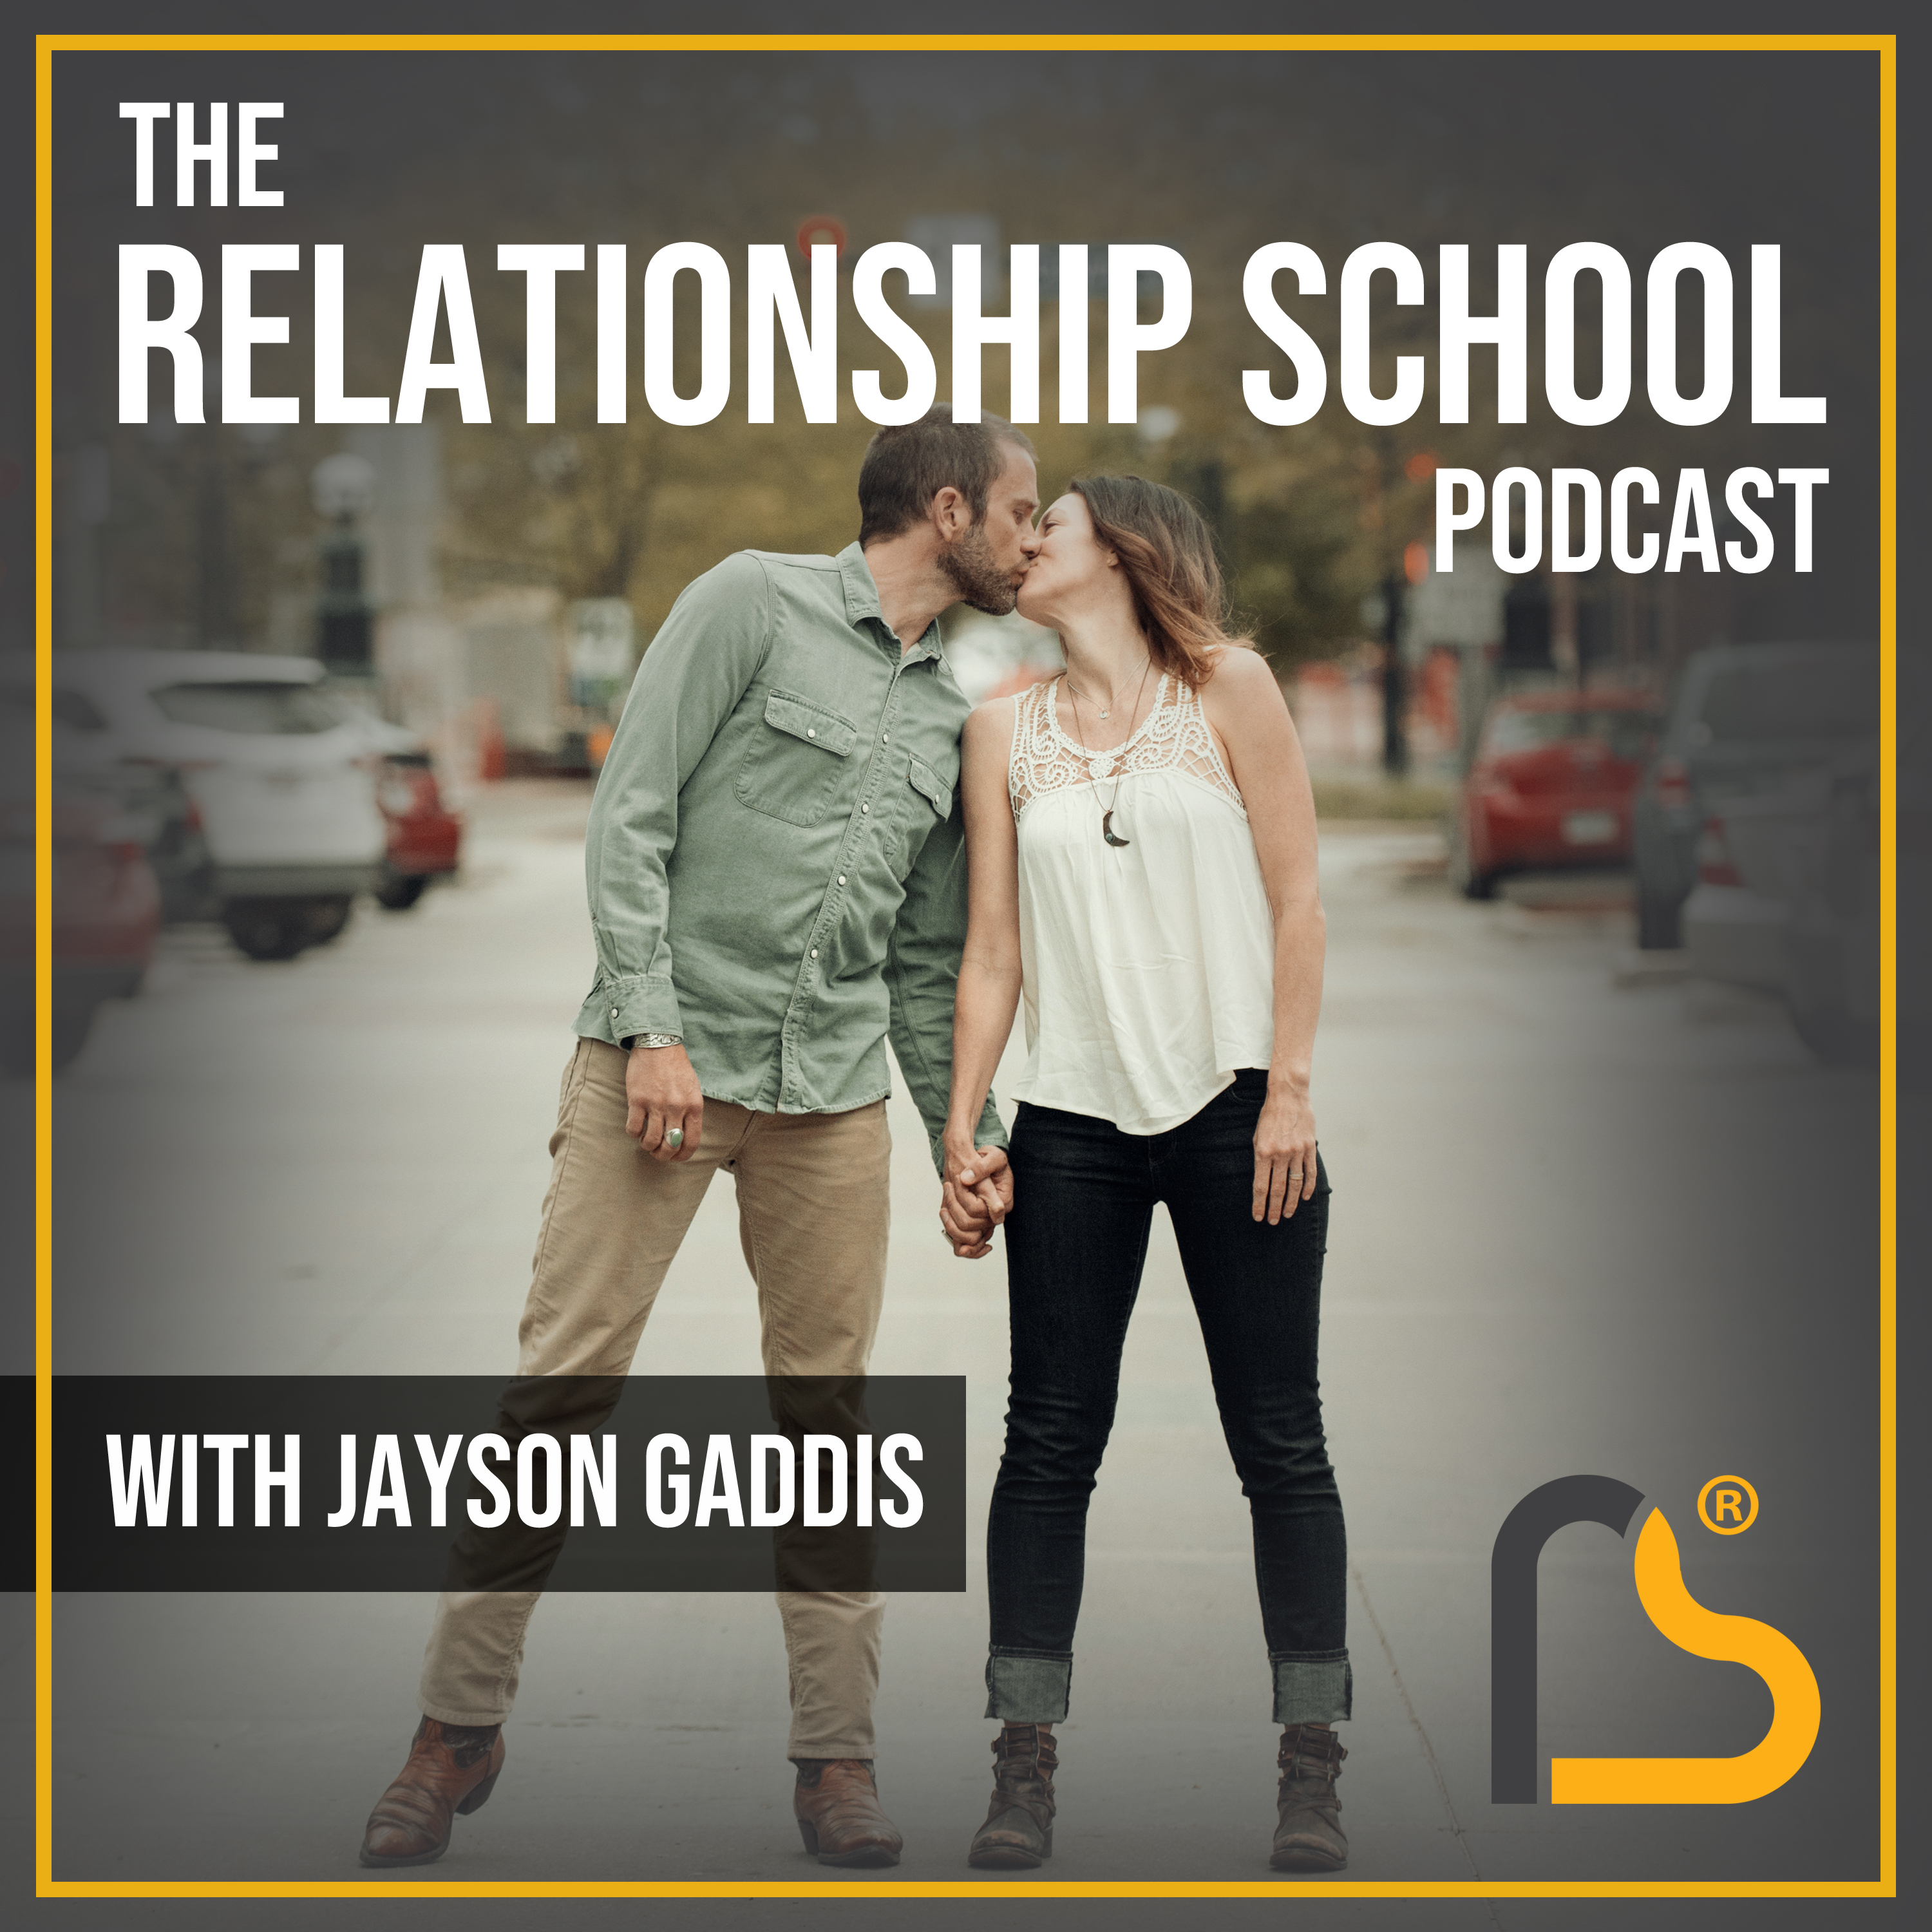 The Relationship School Podcast - Why Confidence Is More Attractive Than Looks - Relationship School Podcast EPISODE 246